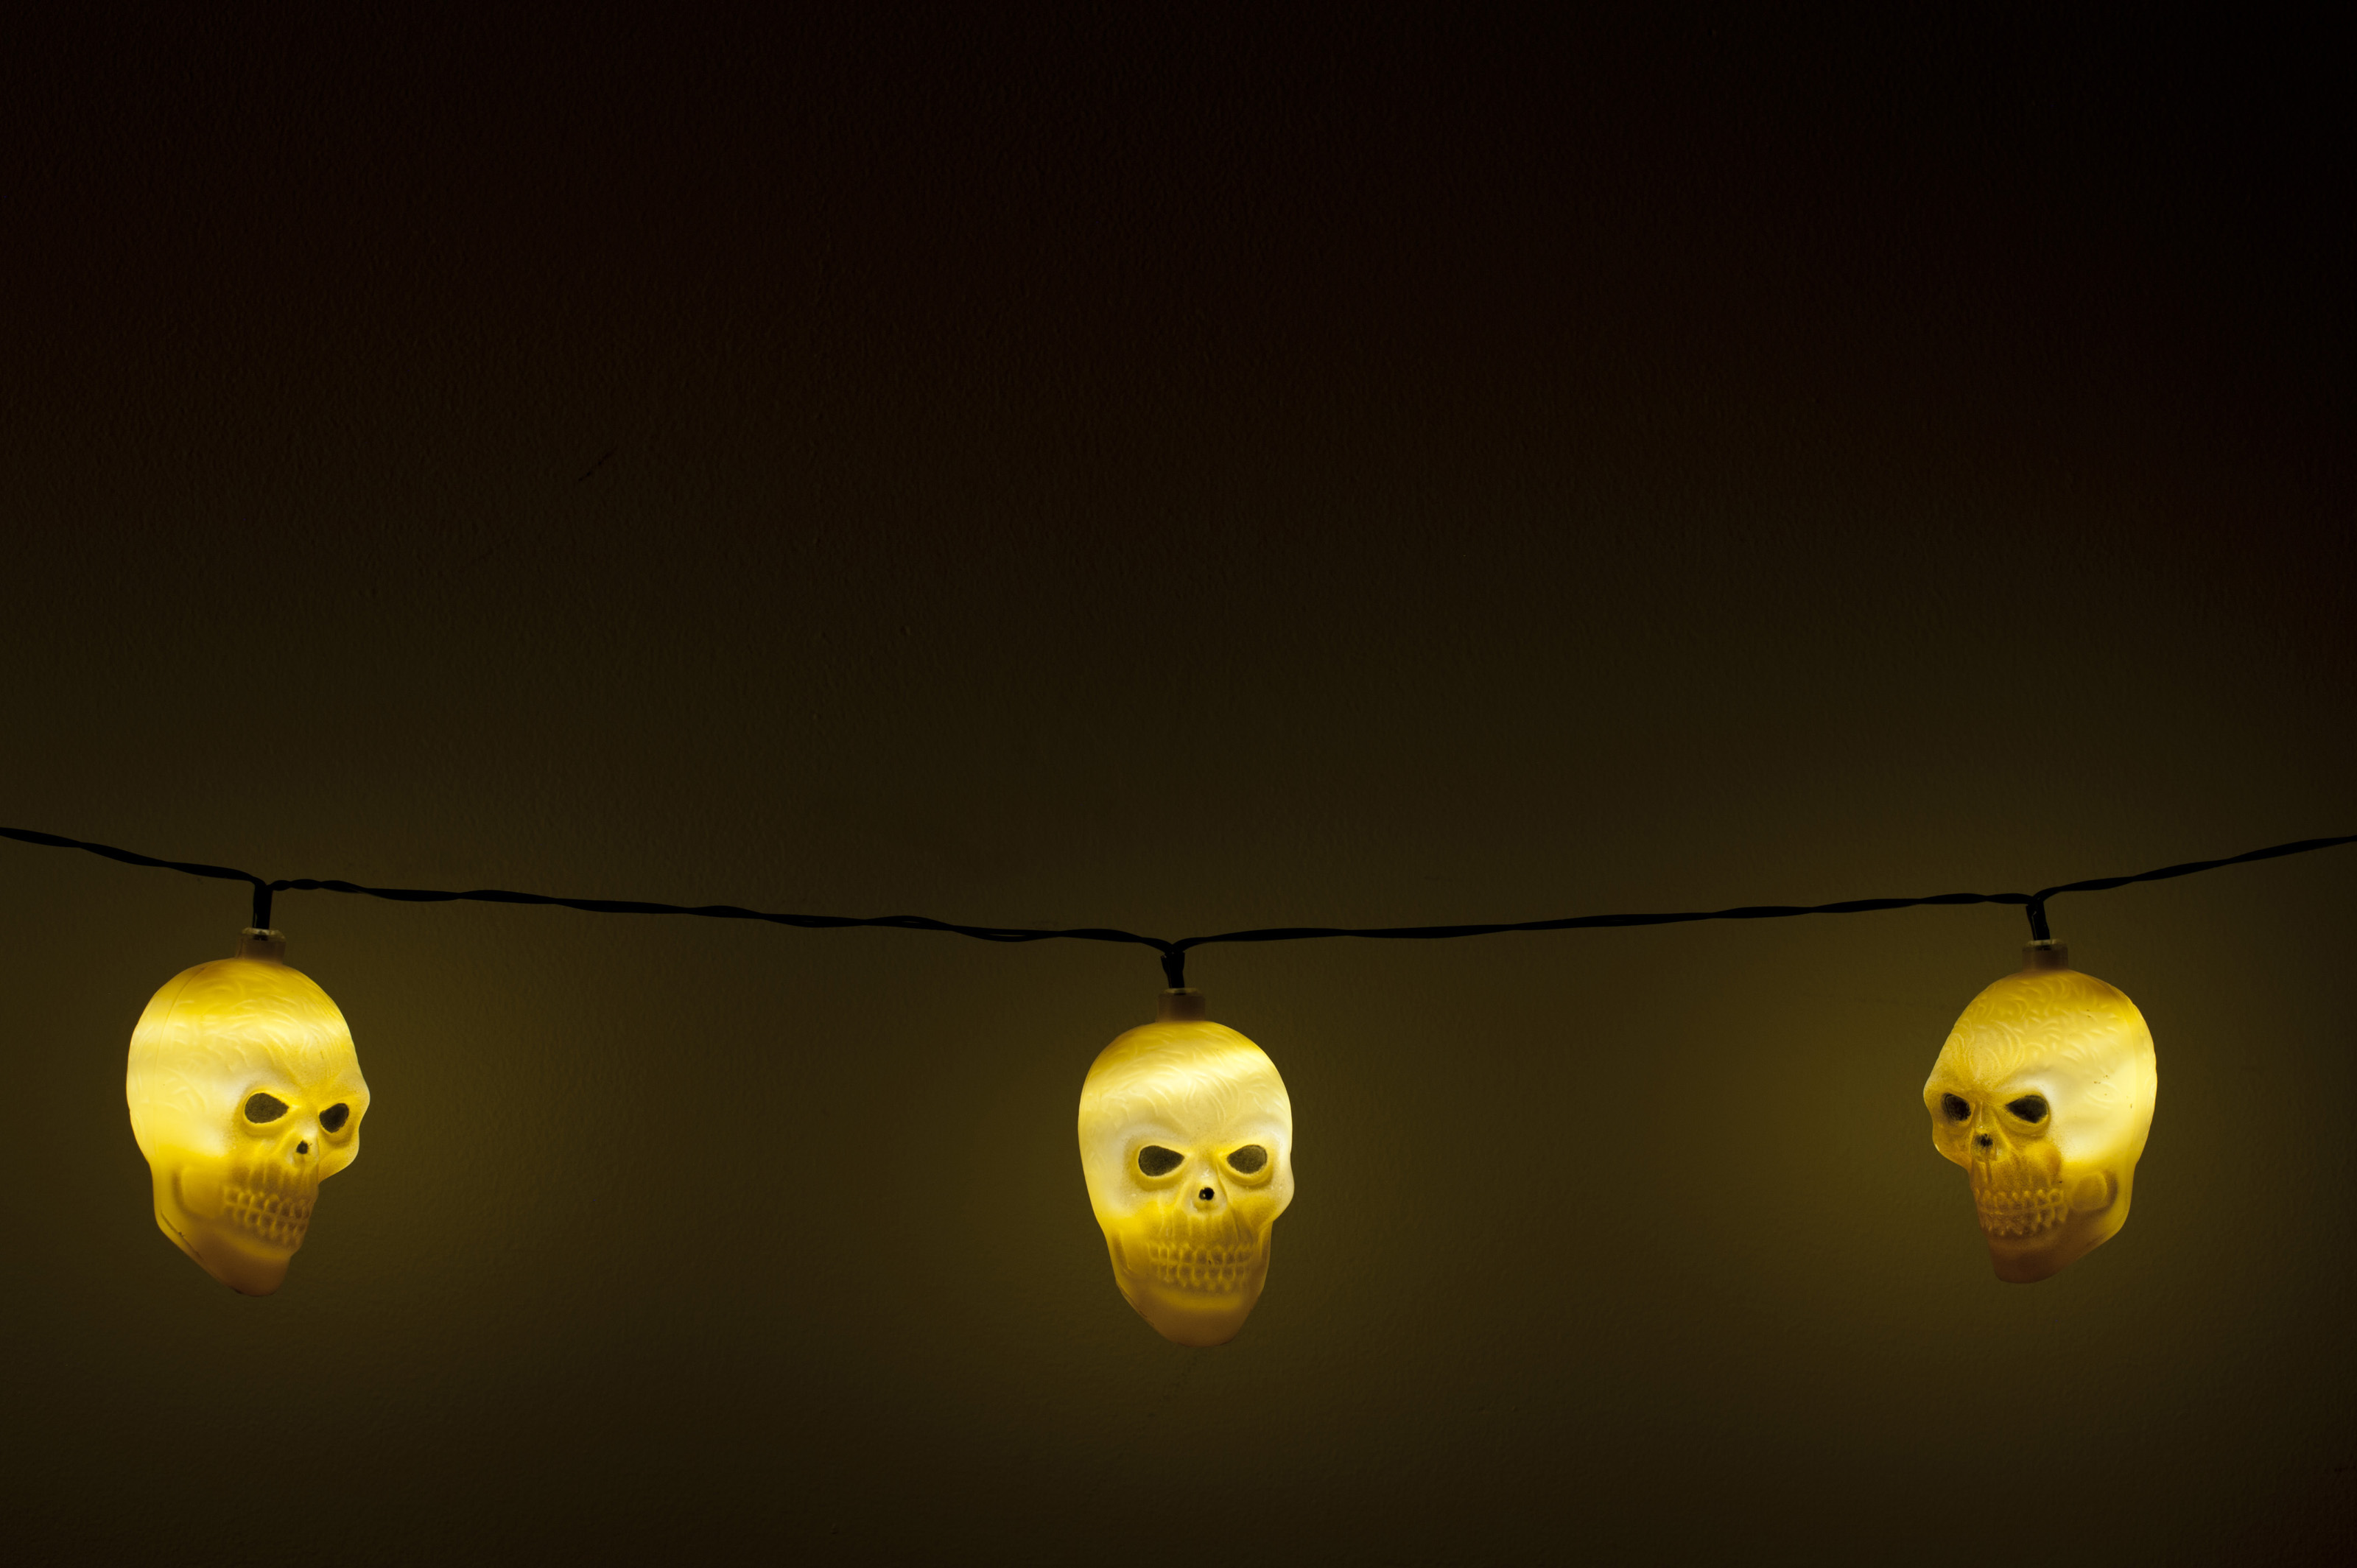 Three spooky glowing yellow Halloween skull lights forming a lower border in the darkness with copy space for your festive greeting